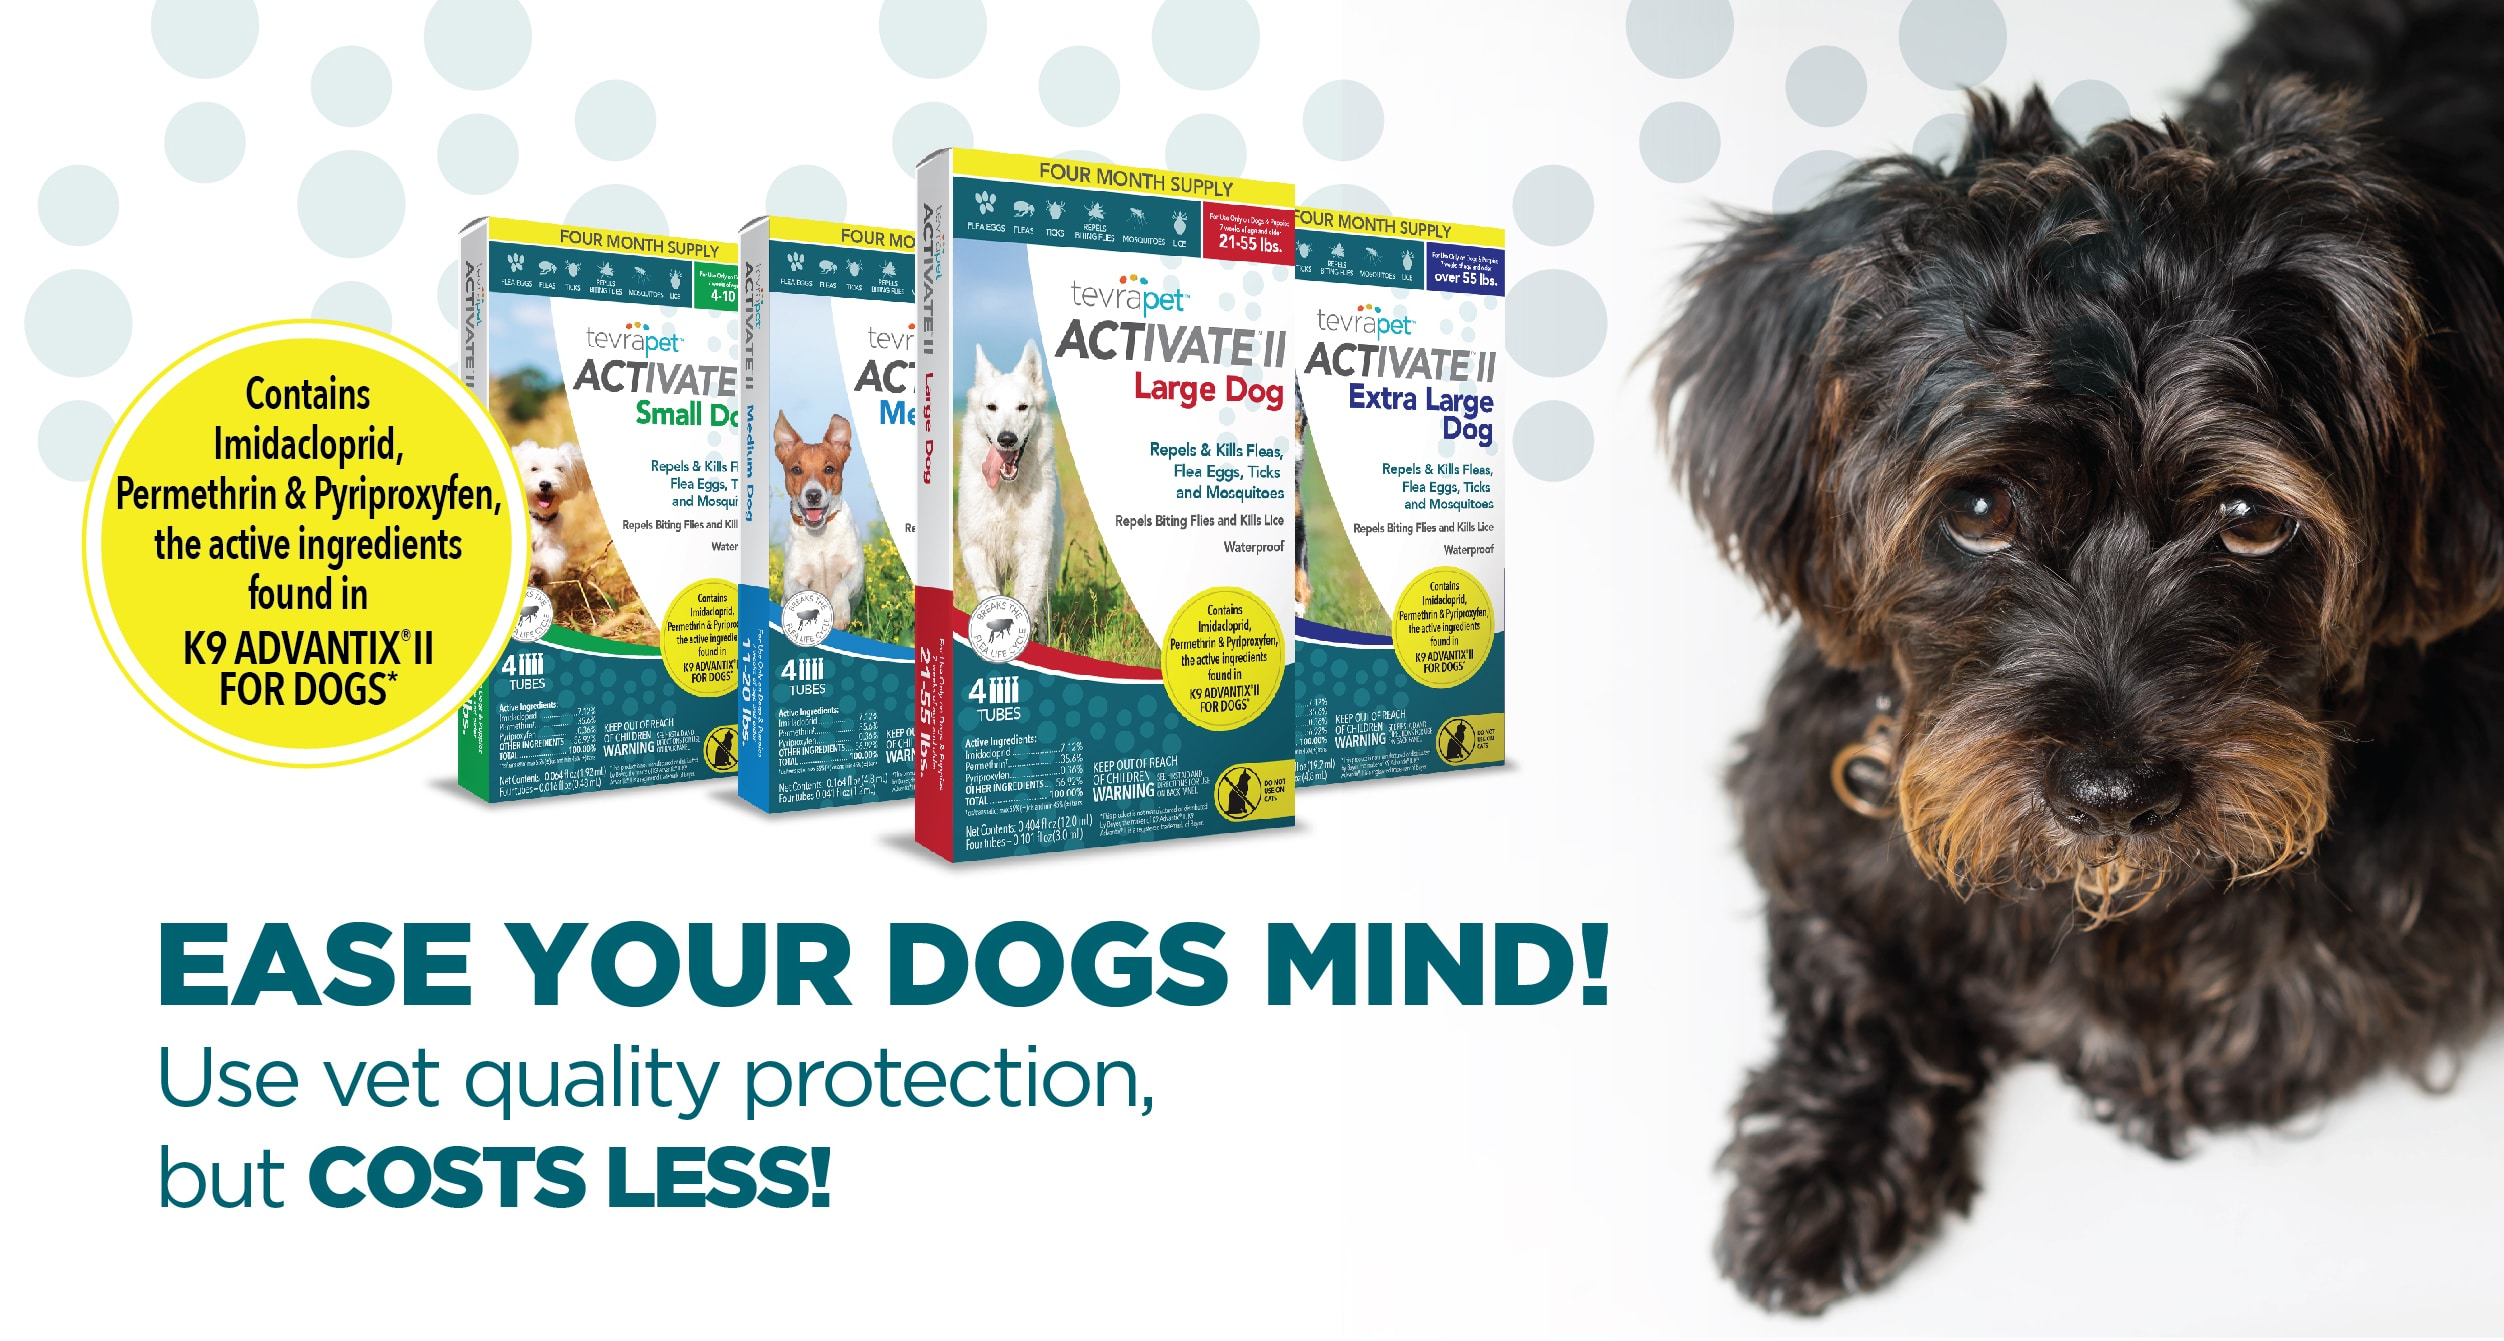 ease your dogs mind copy